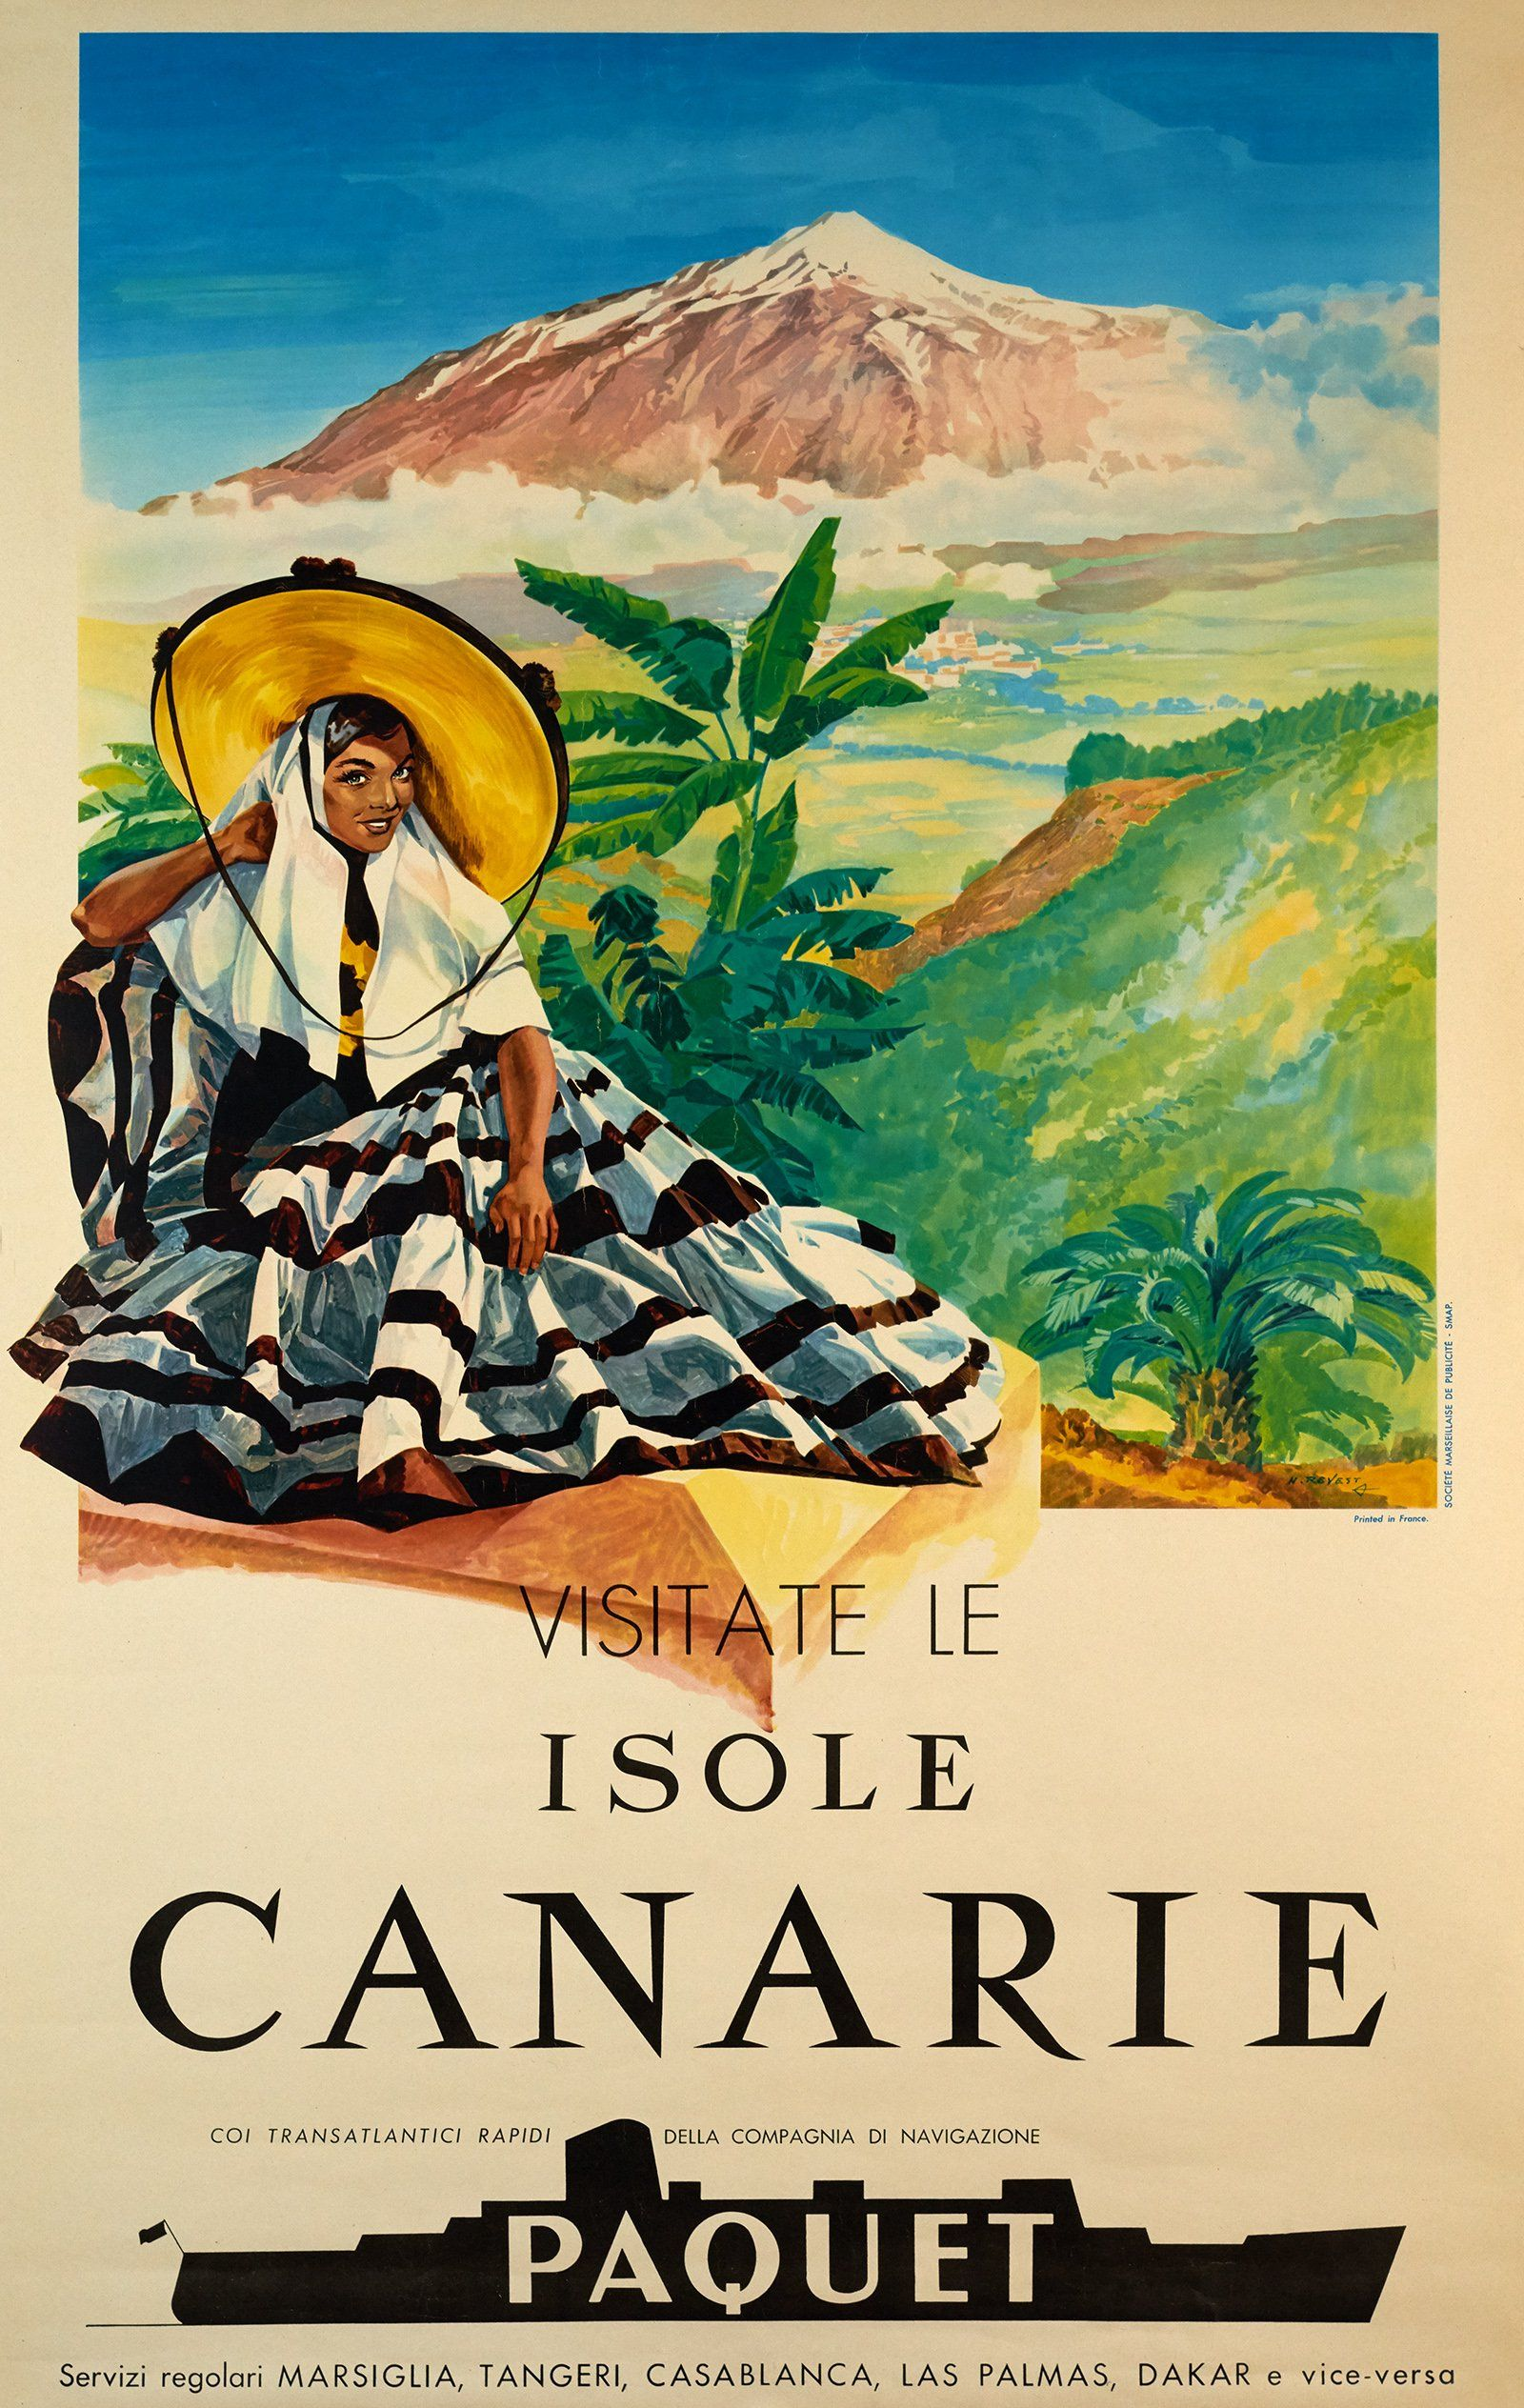 Vintage Poster Visitate Le Isole Canarie, Paquet Galerie 1 2